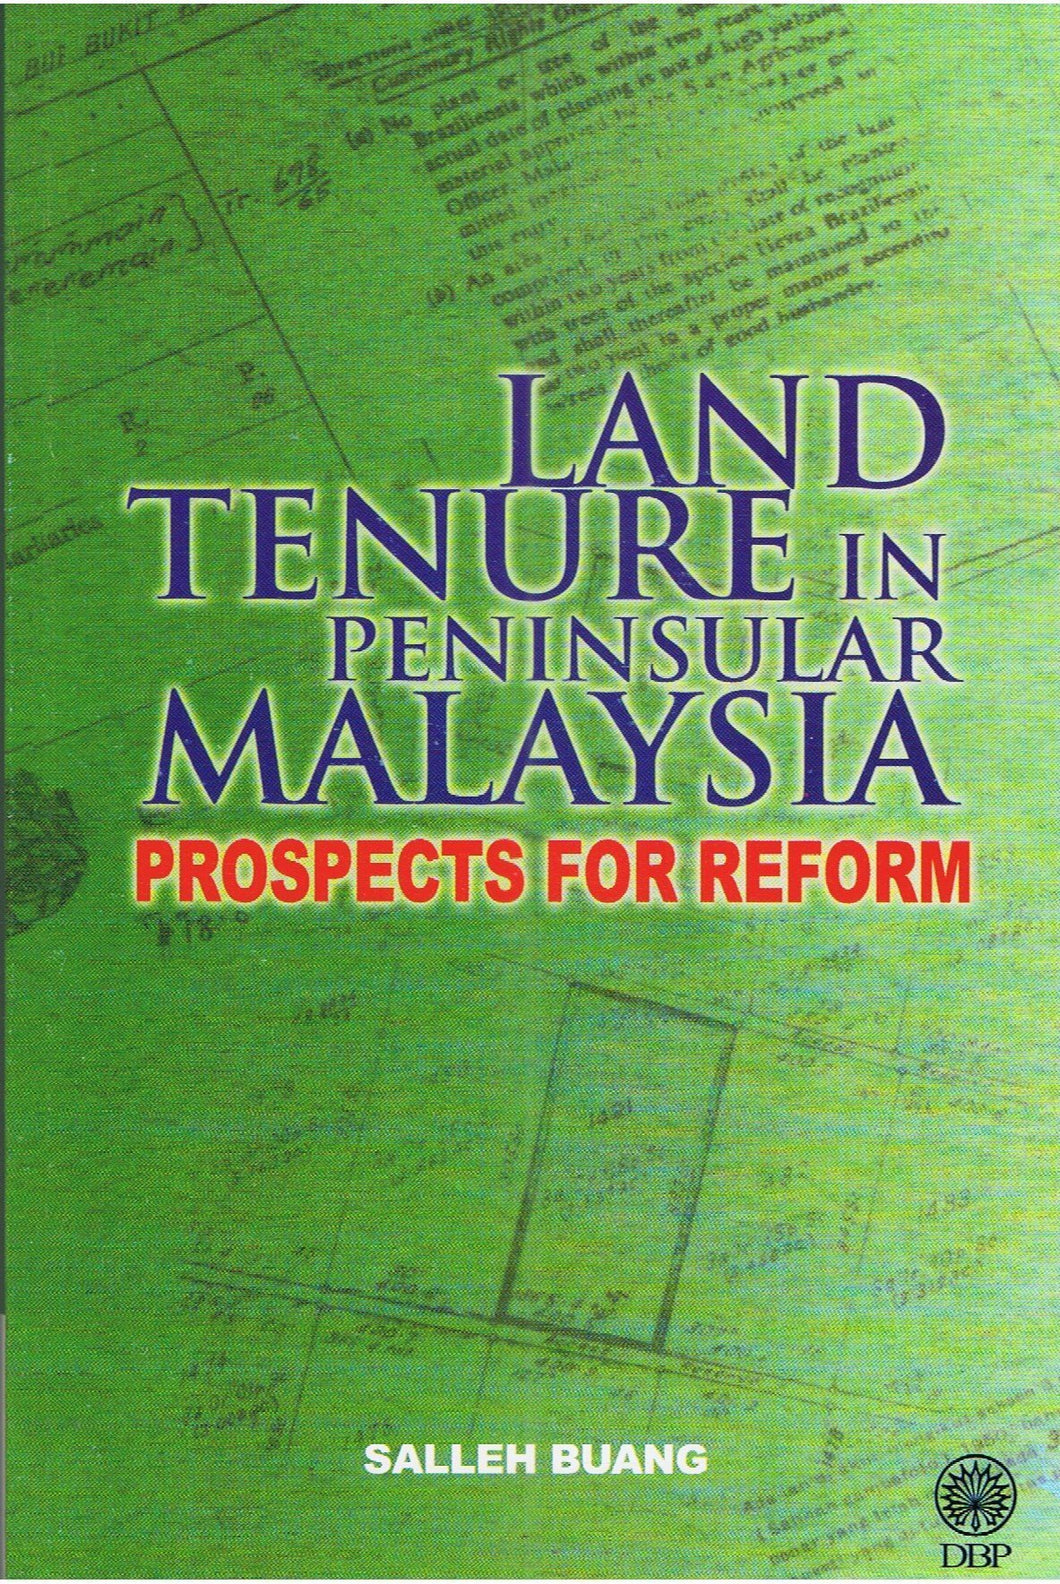 Dewan Bahasa dan Pustaka-Land Tenure In Peninsular Malaysia; Prospects For Reform-9789834611491-BukuDBP.com